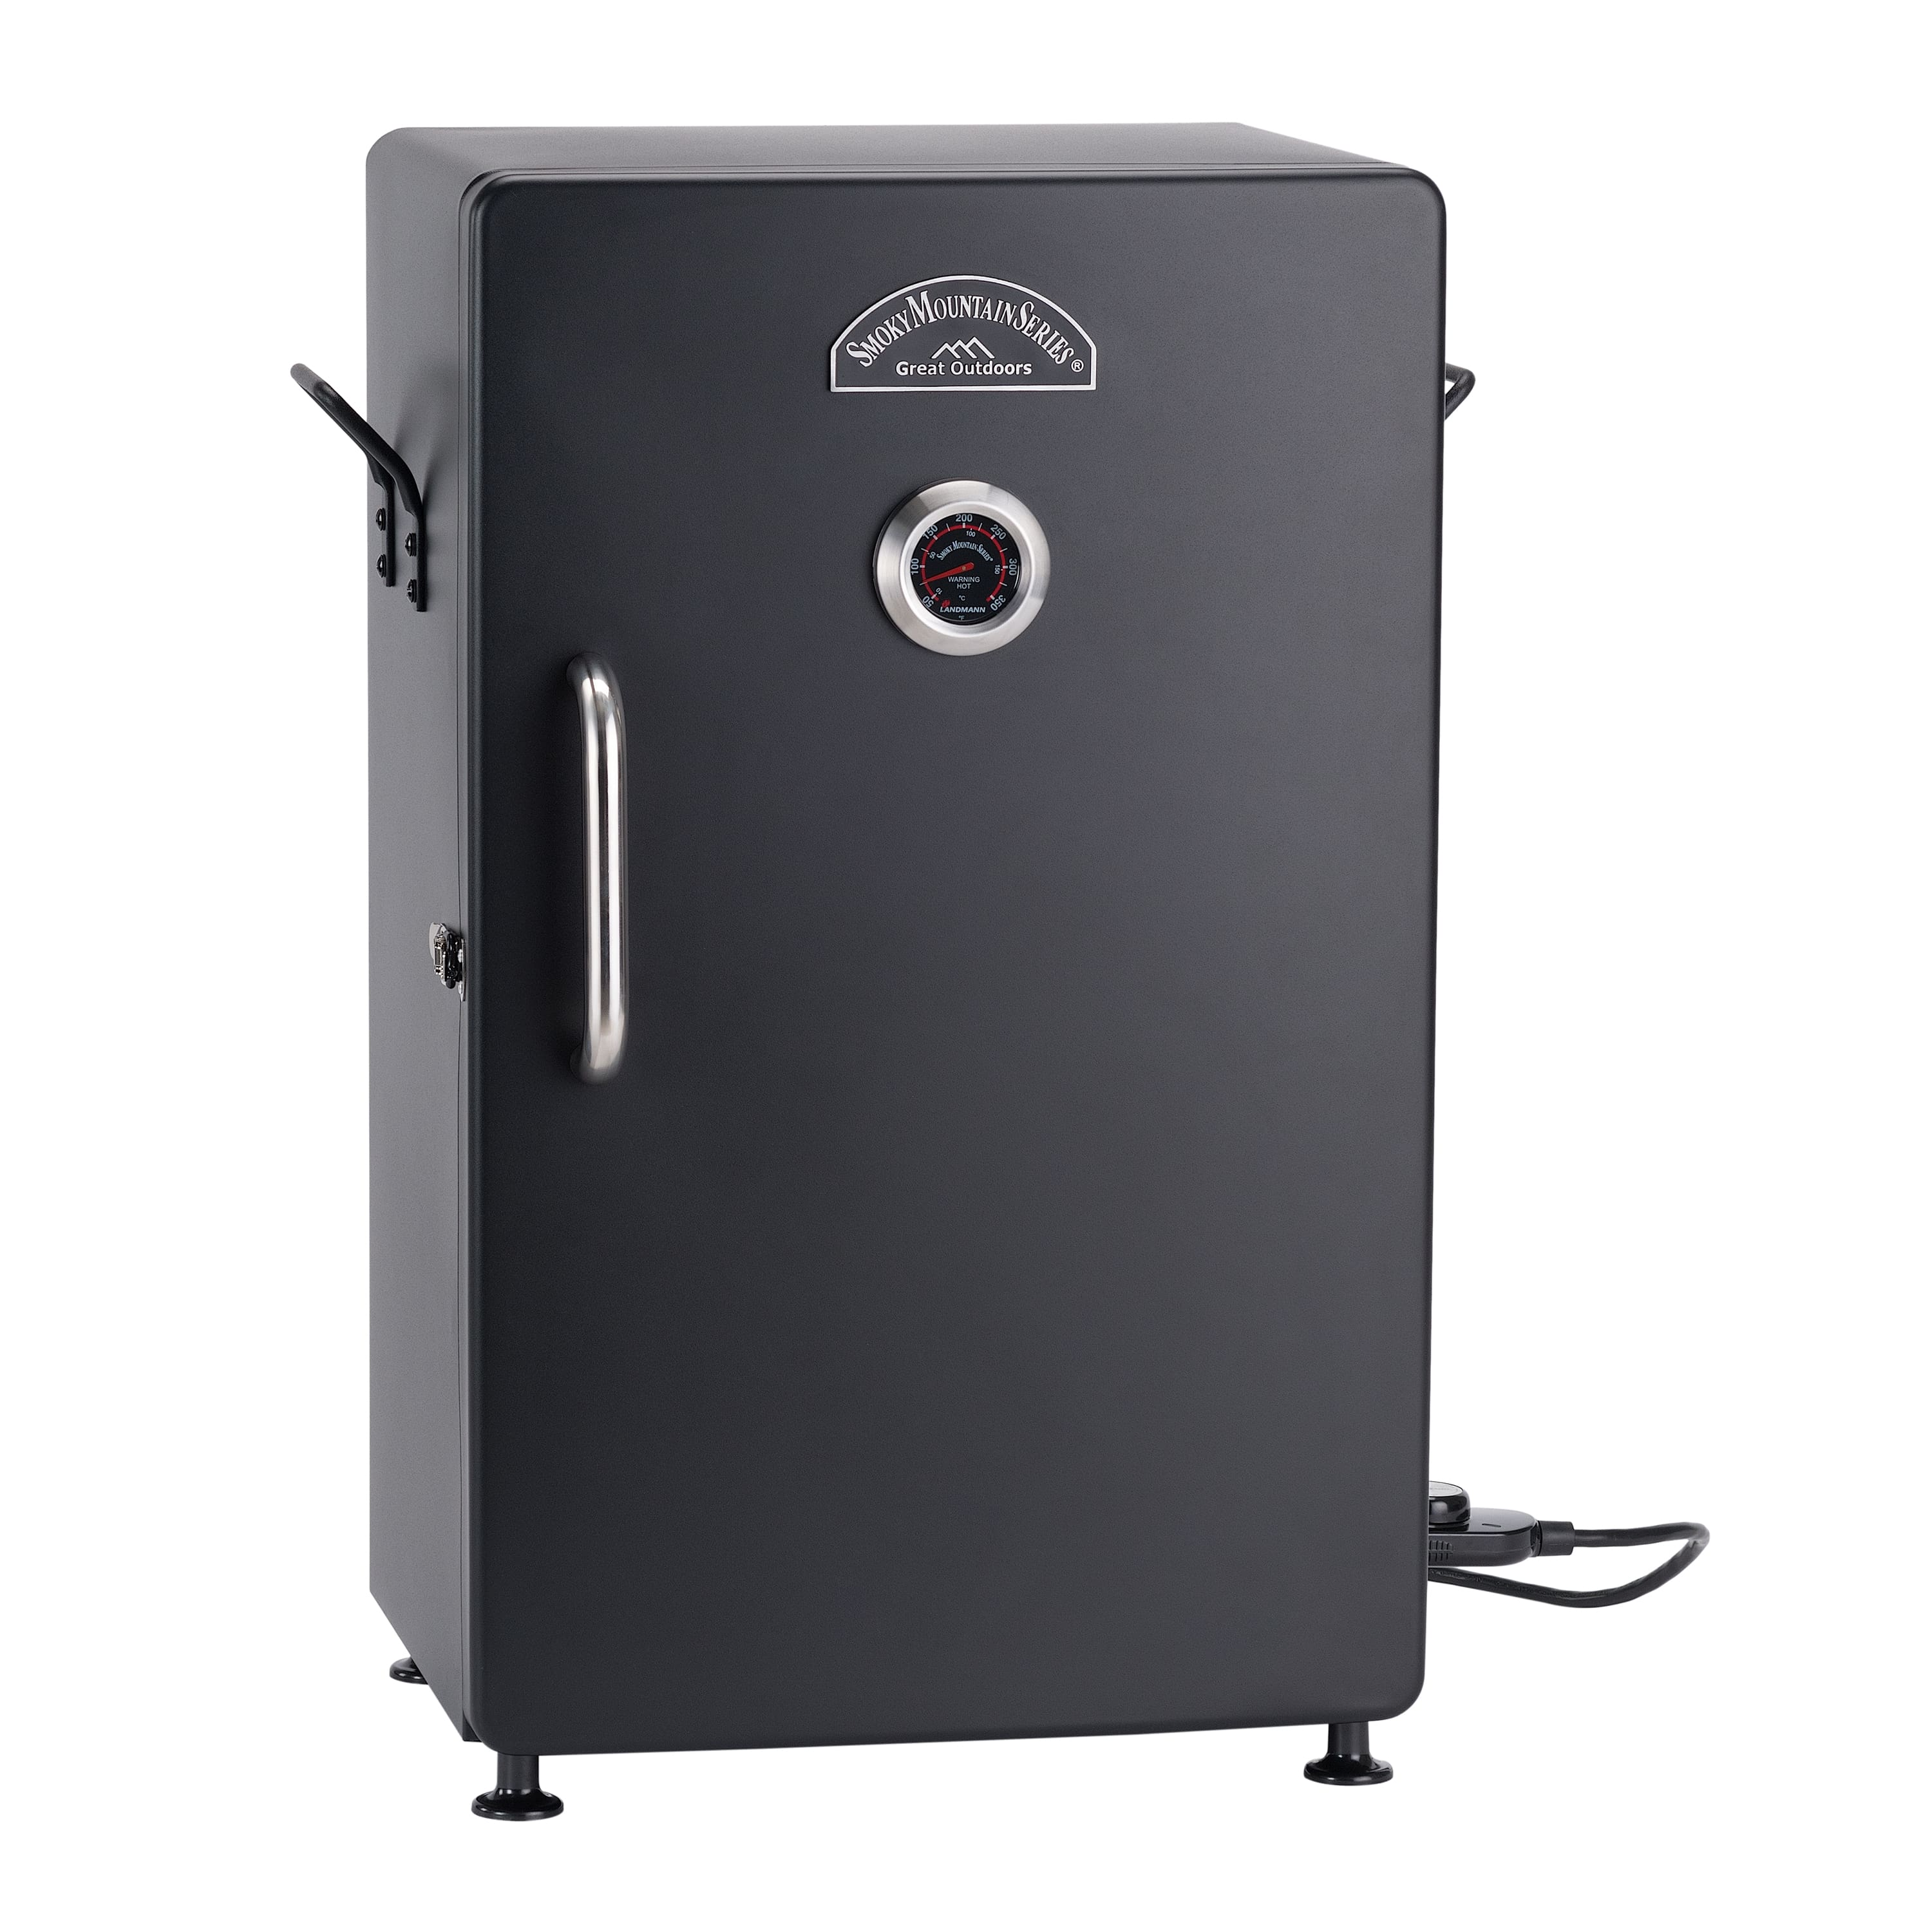 Electric Smoker $69.99 clearance $196.98)